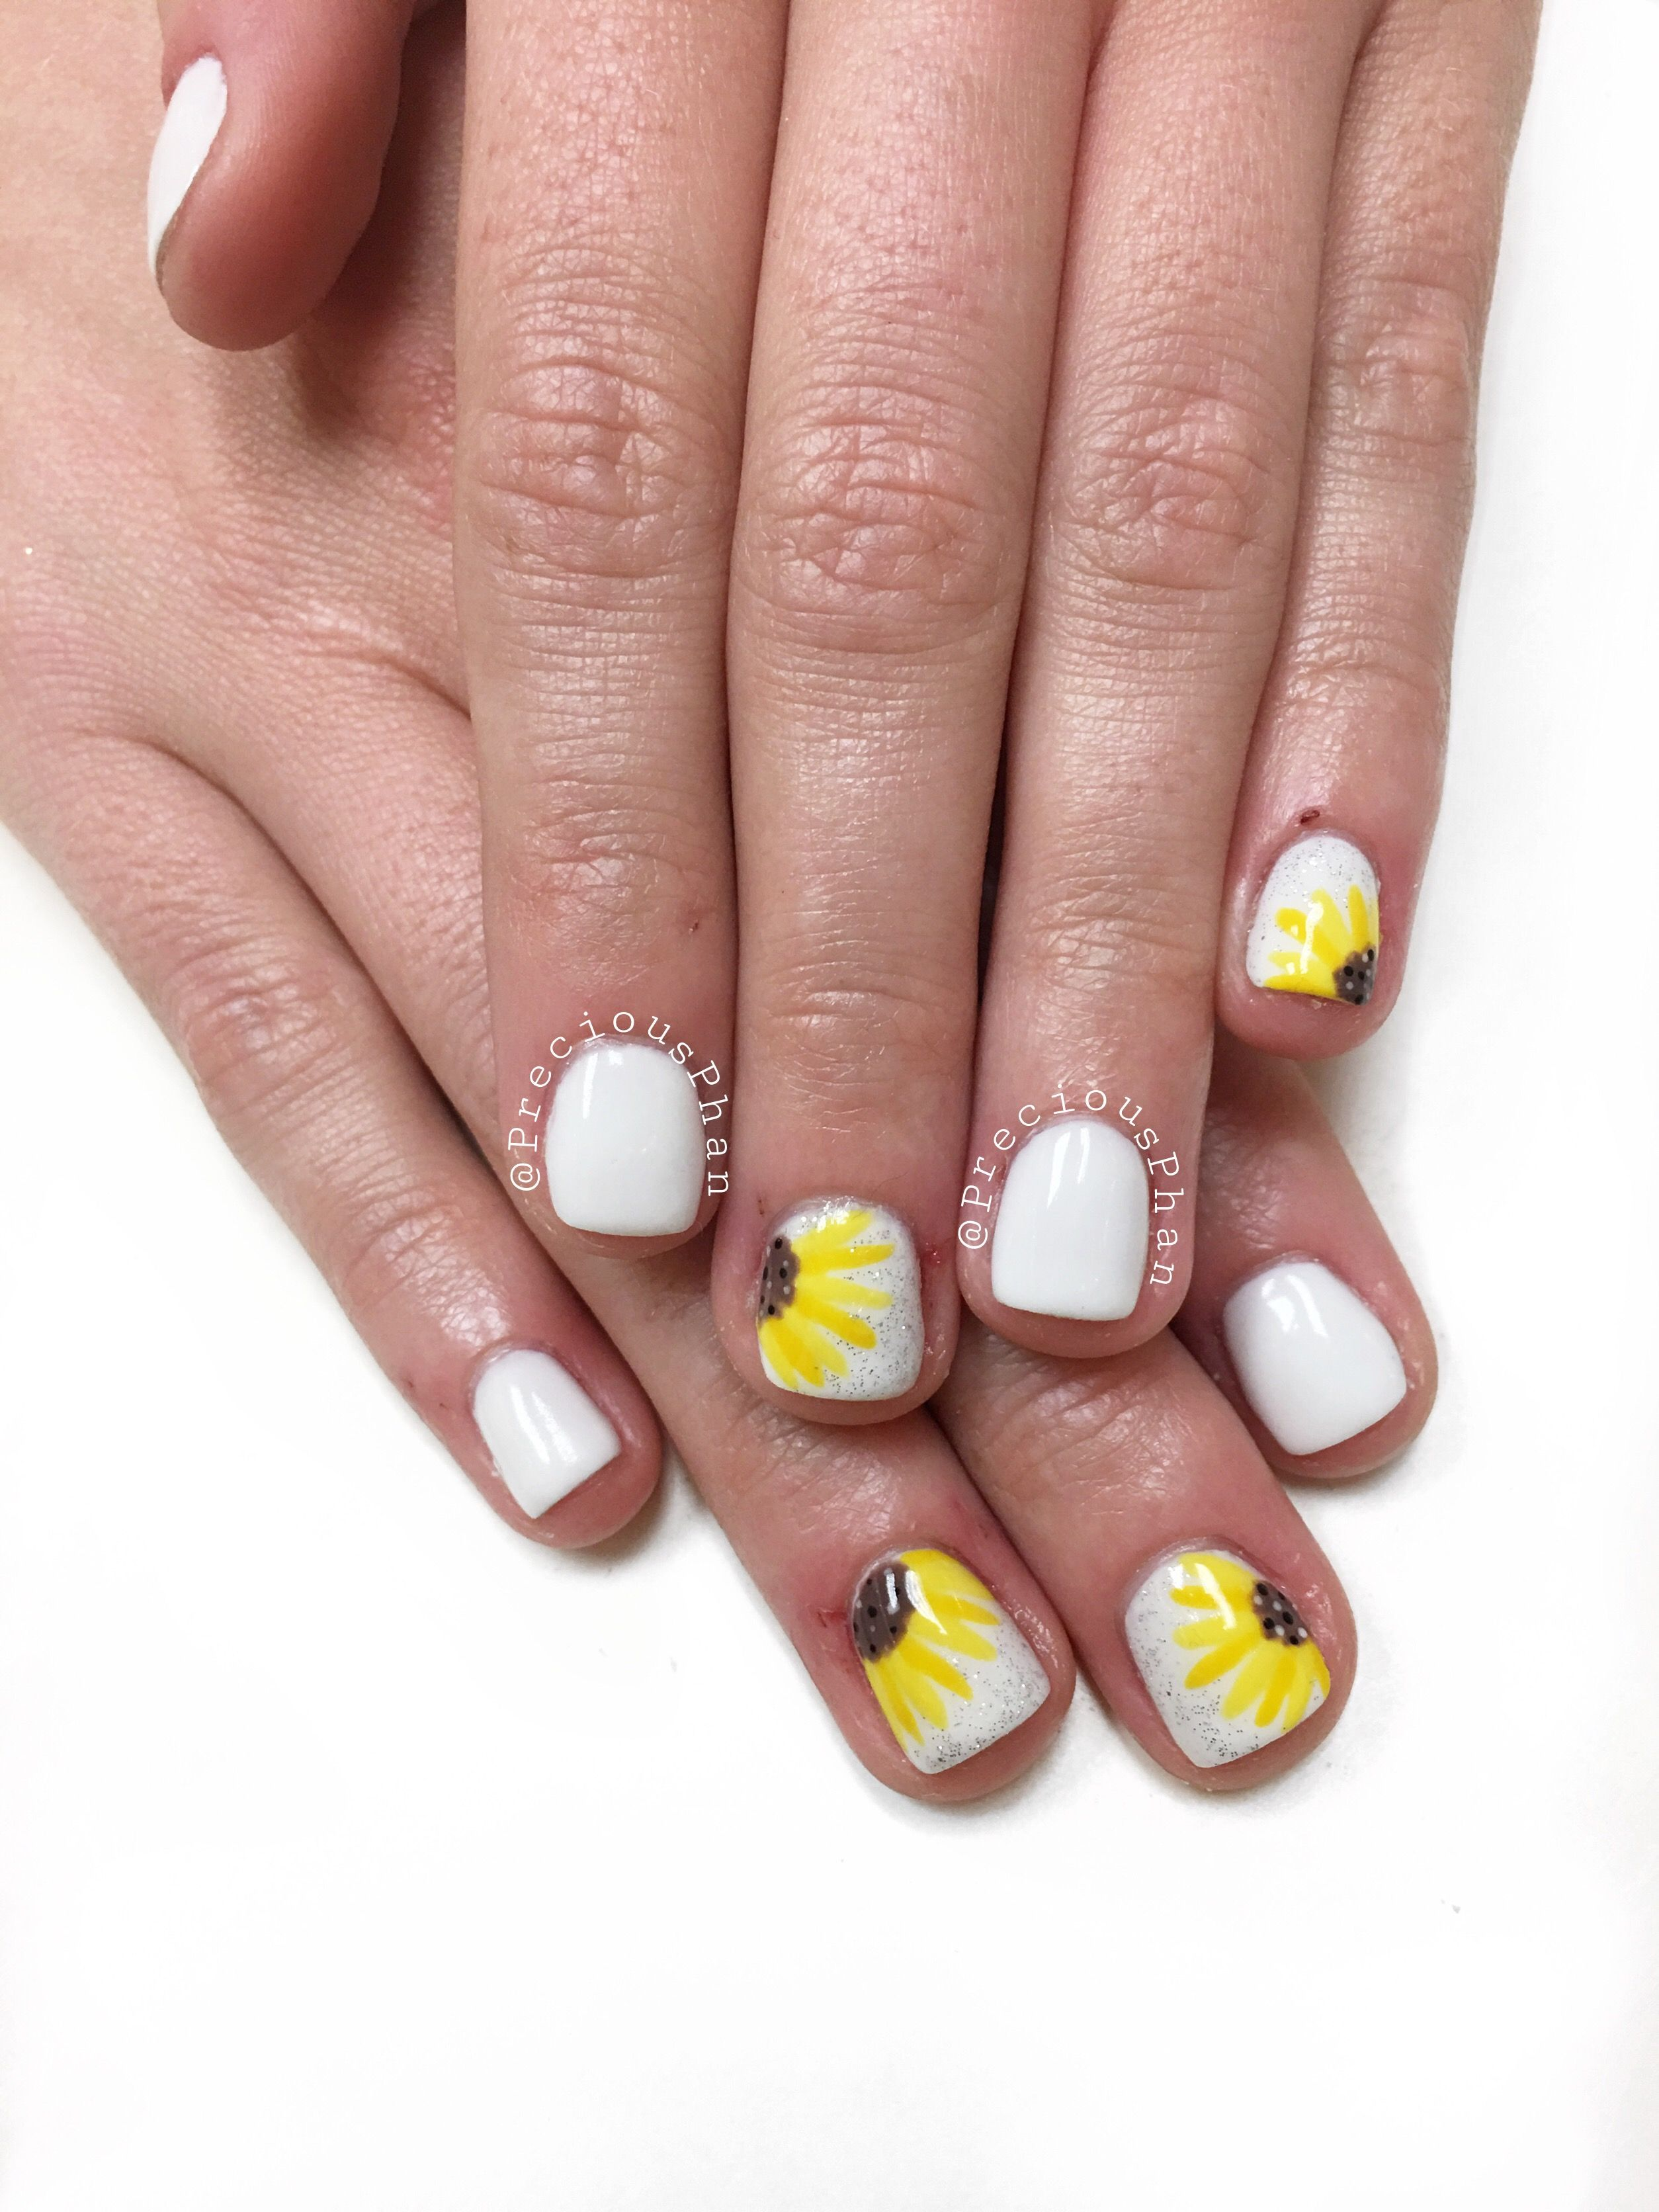 Nails With Sunflowers : nails, sunflowers, White, Nails, Sunflowers, Everything, #PreciousPhan, Sunflower, Nails,